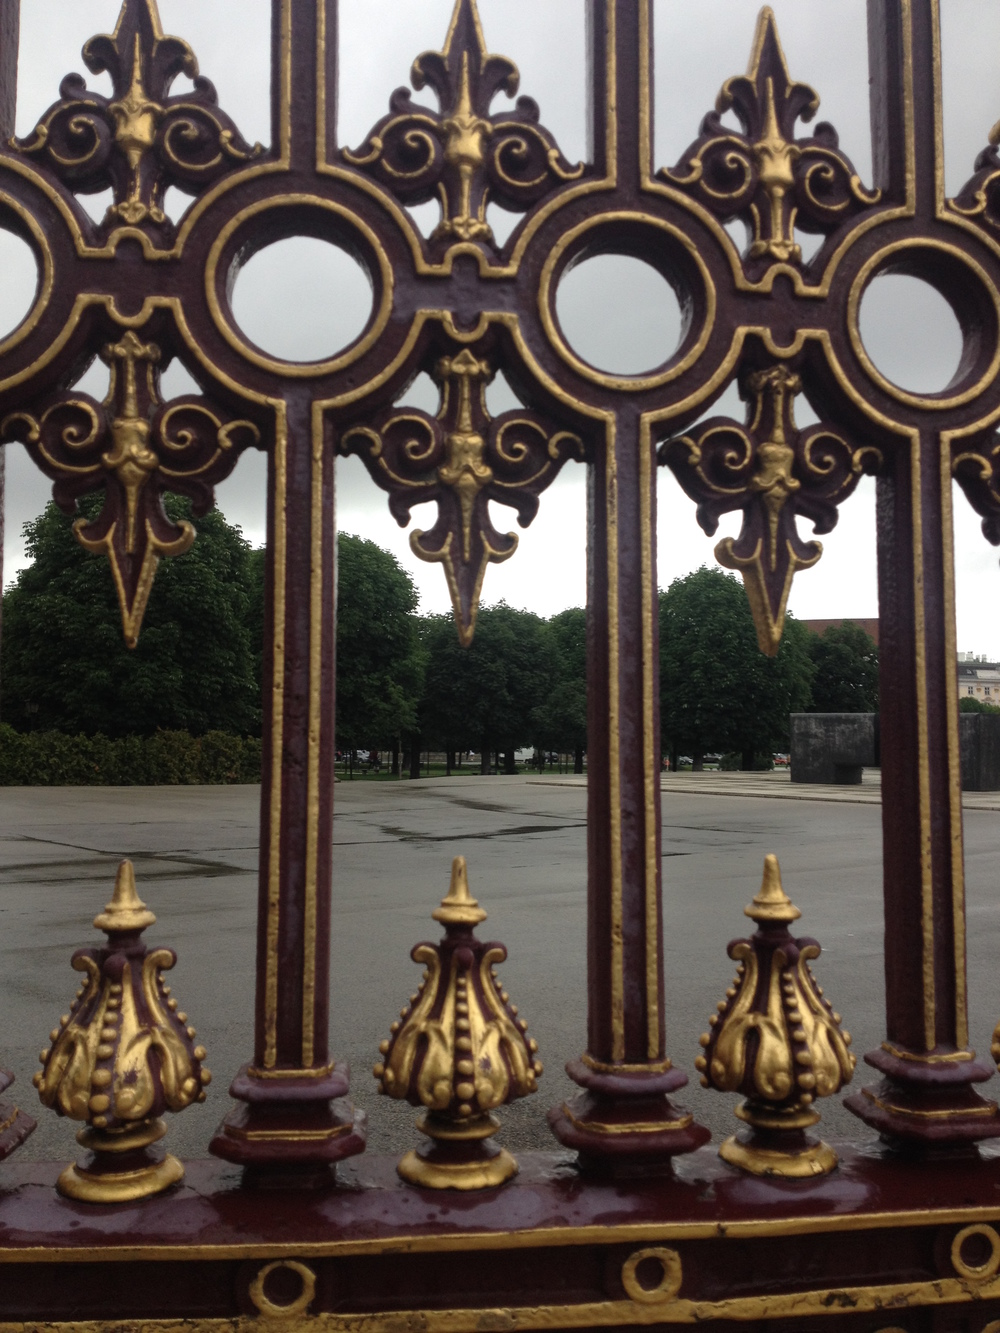 Detail of  the fence surrounding Hofburg Palace in the Vienna's Innere Stadt. July 2014. Photo courtesy of Megan Hoetger.